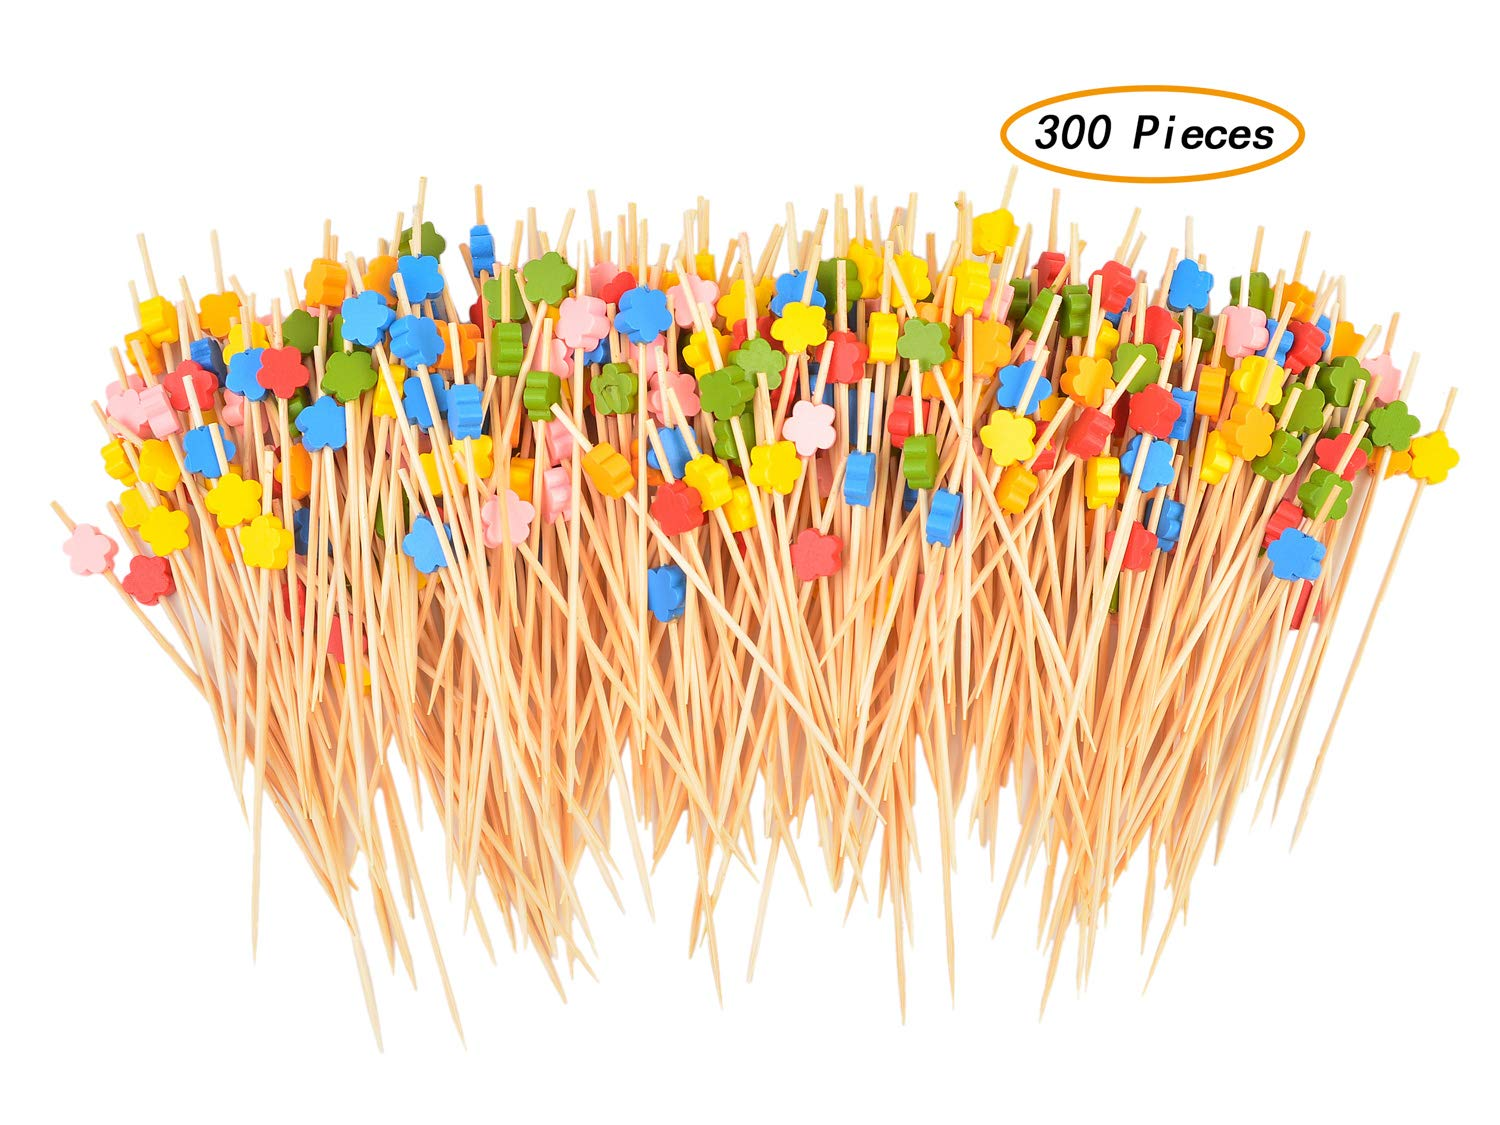 Vancool 300 Pieces Cocktail Picks Handmade Bamboo Toothpicks, 4.7 Inches Assorted Color Cherry